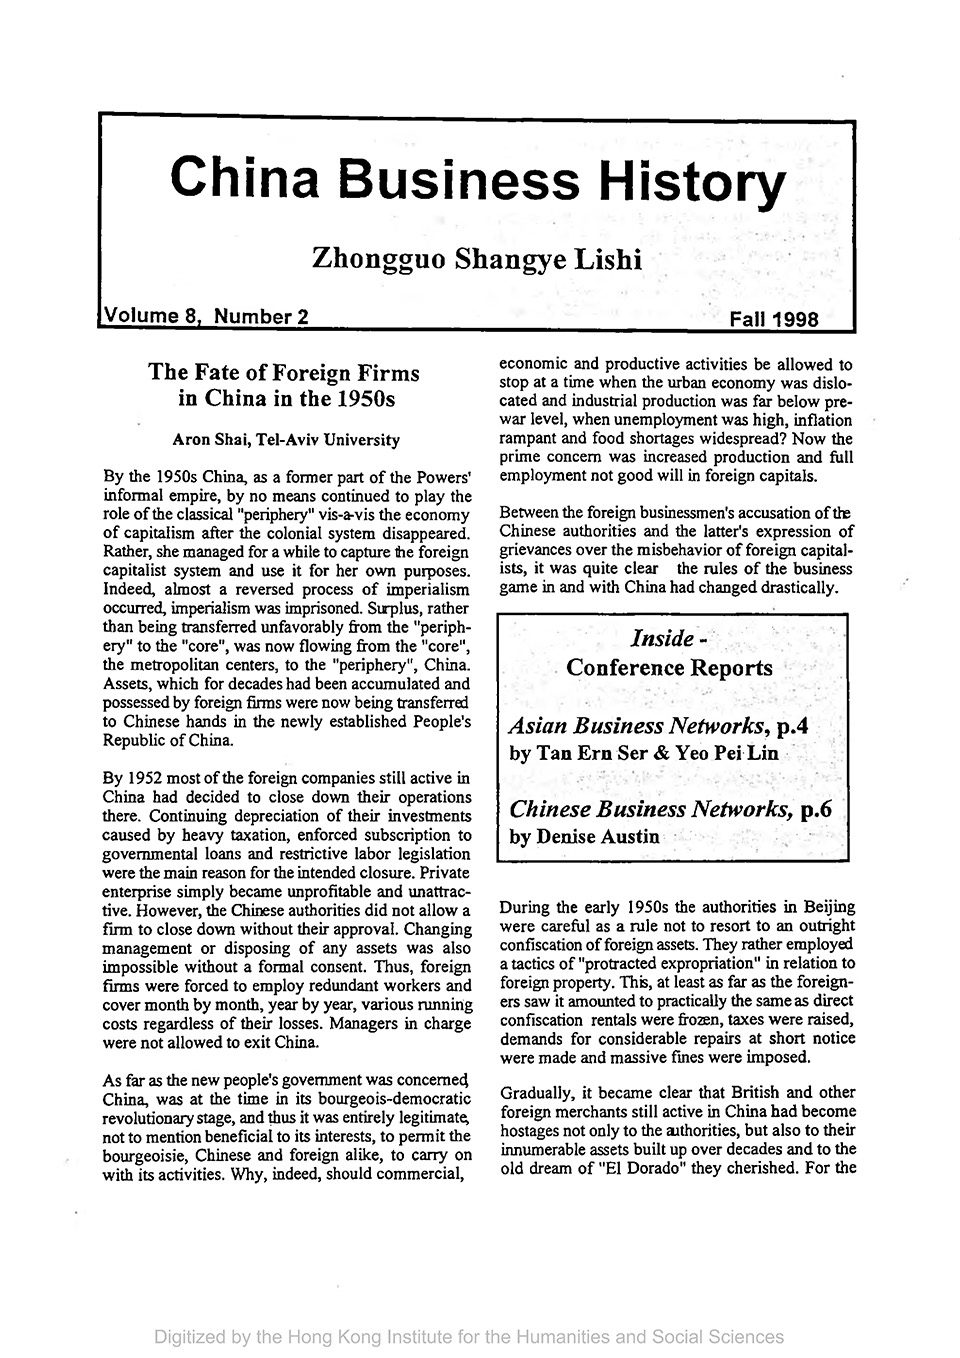 Cover of Chinese Business History Journal Volume 8, Number 2